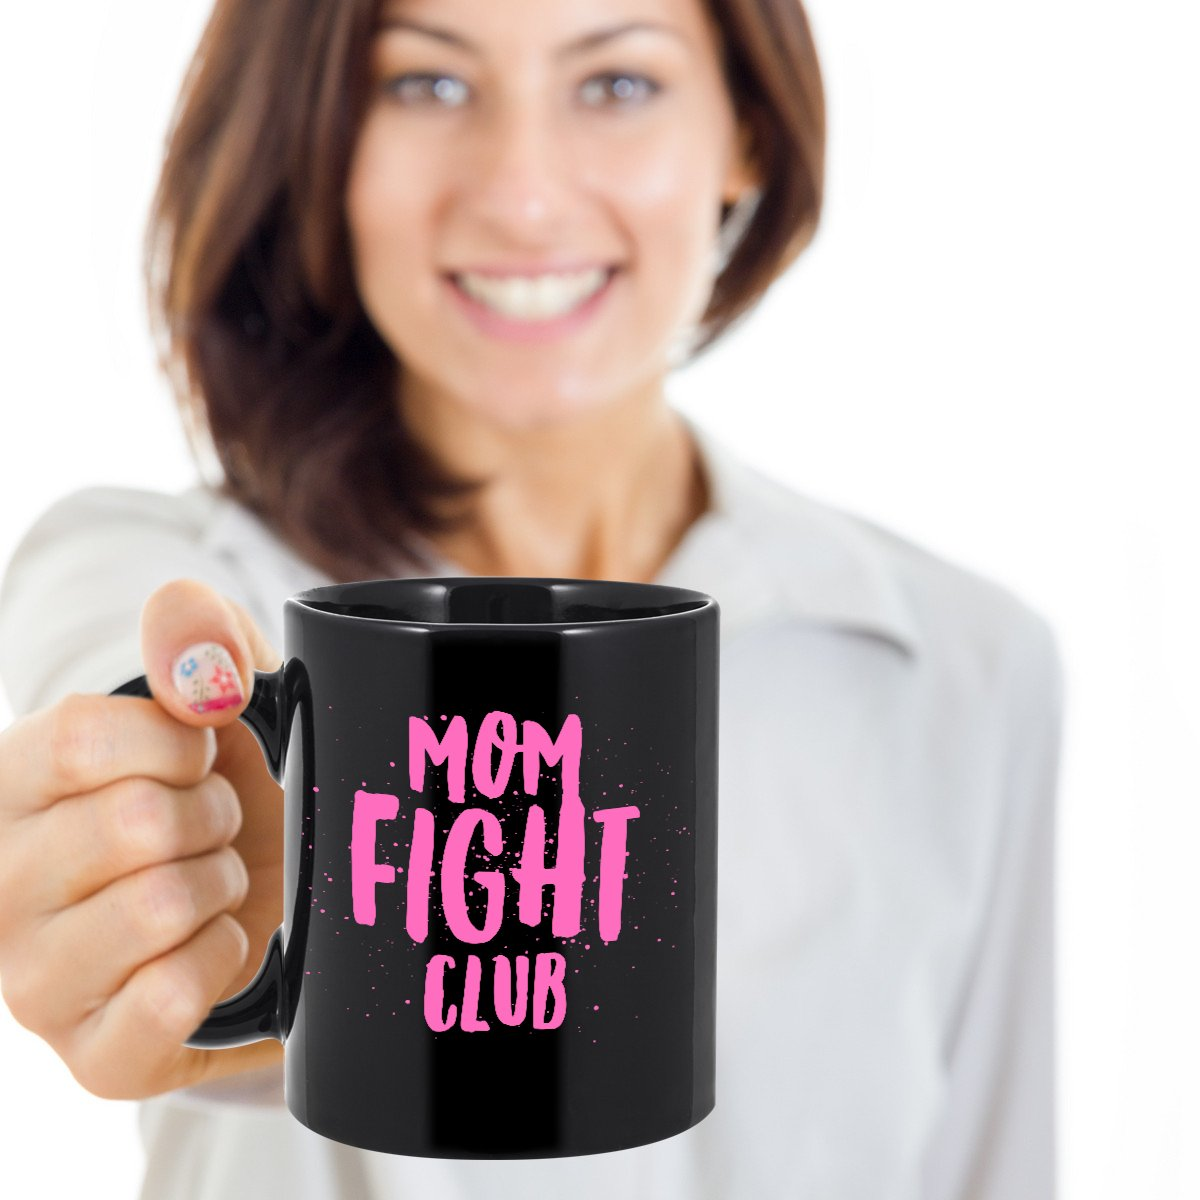 It's time to throw down! #MomFightClub #SundayMorning  https://www.gearbubble.com/momfightmug